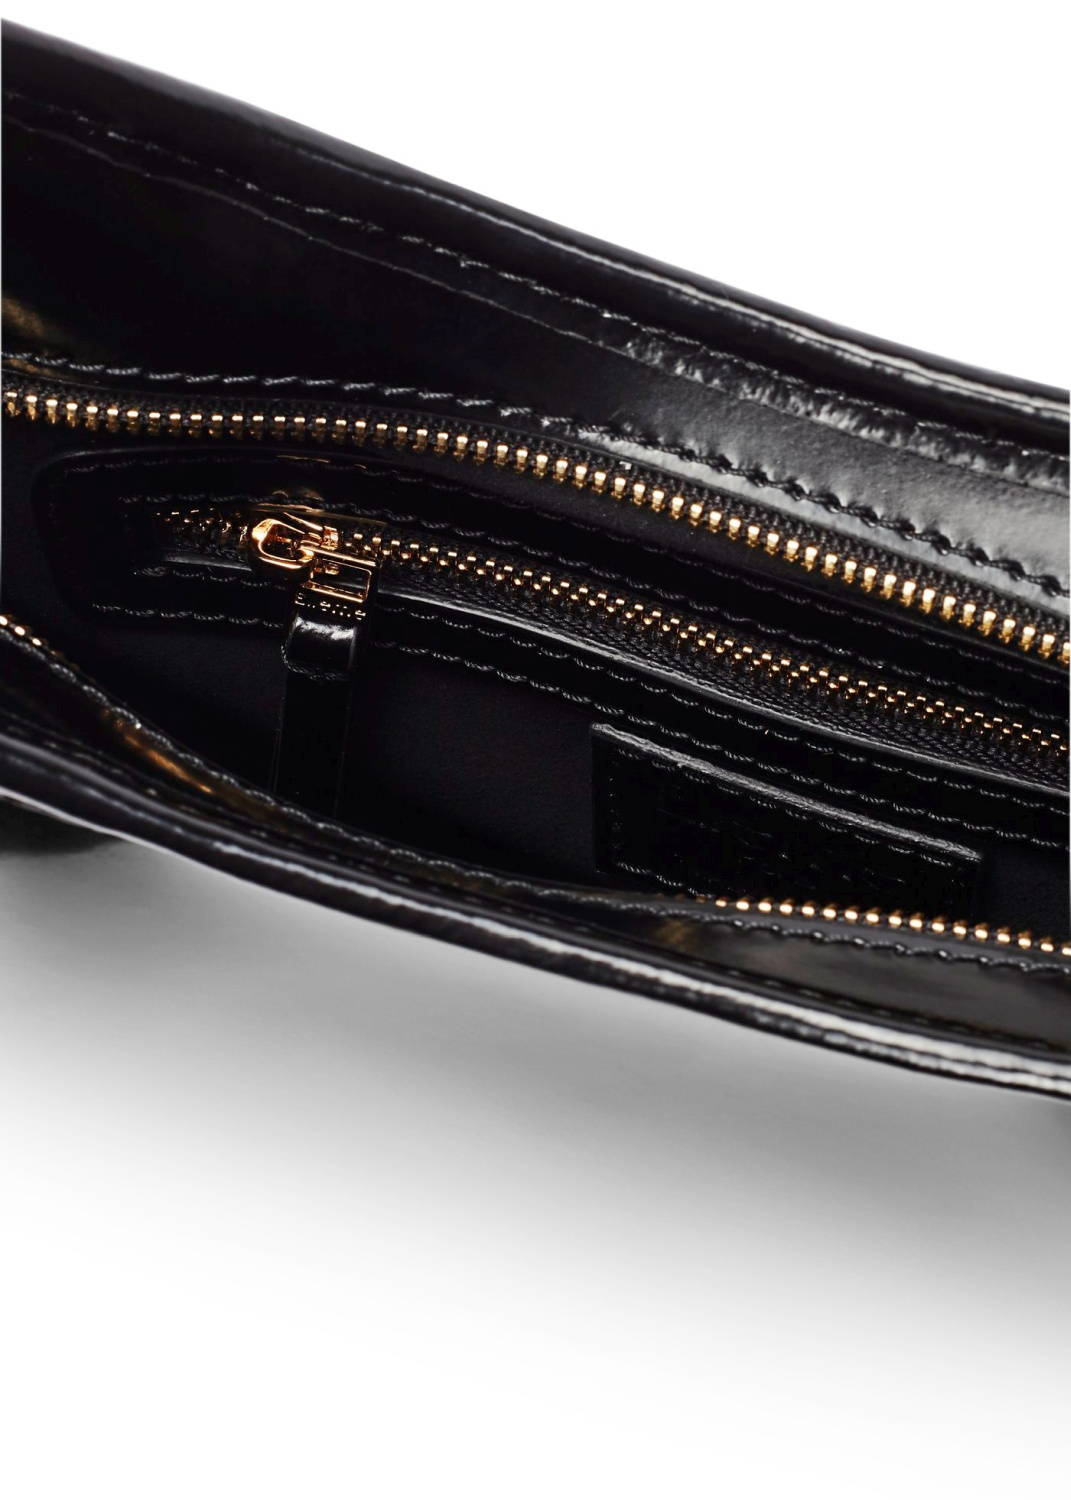 LARGE DIMPLE LEATHER PATENT BLACK OS image number 3